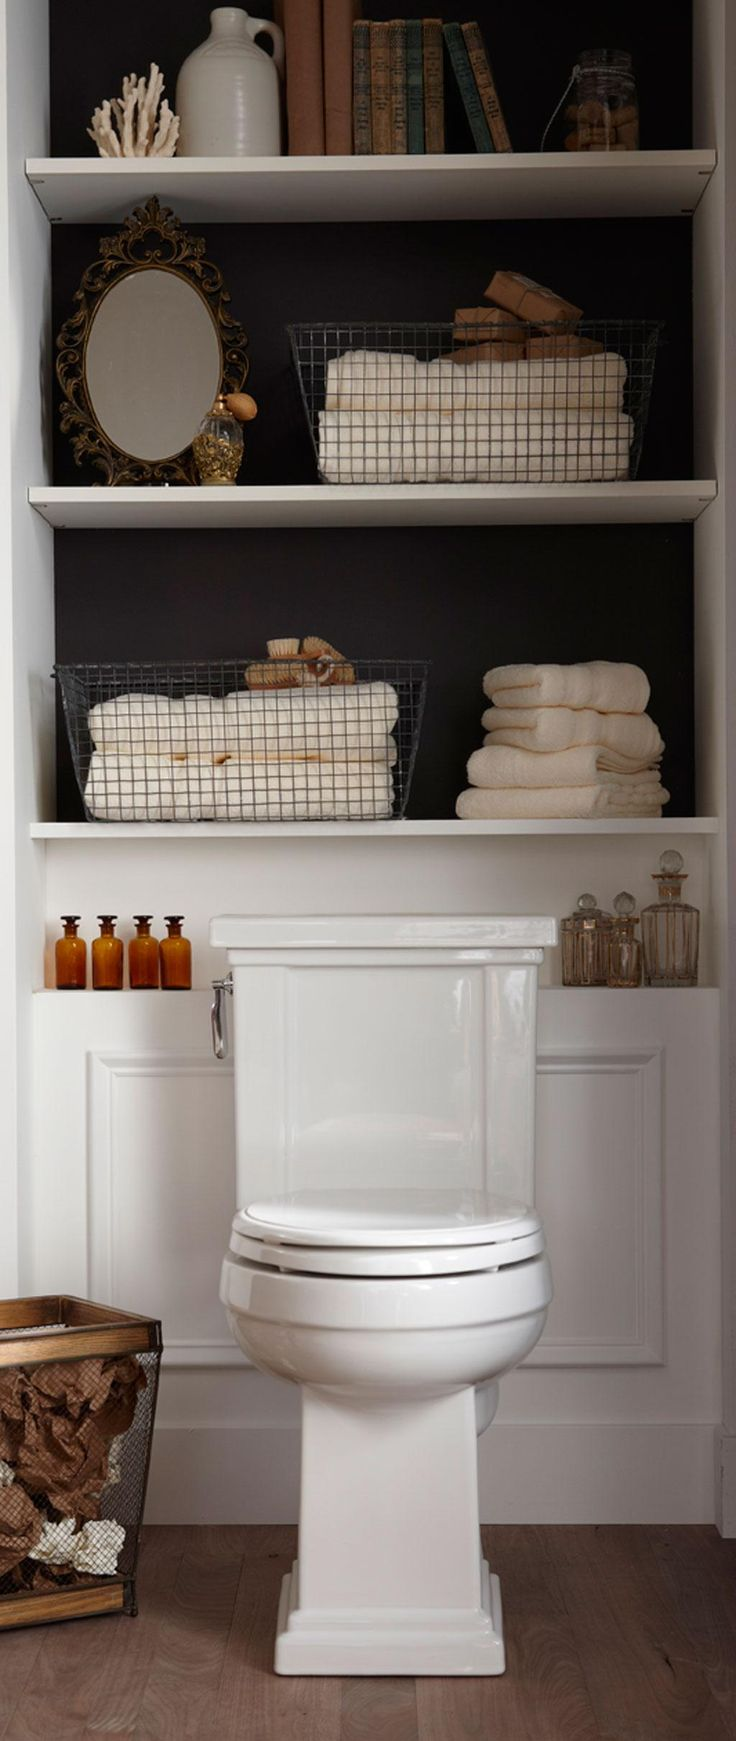 Marvelous Open Shelving In Bathroom 4 Bathroom Behind Toilet Shelving